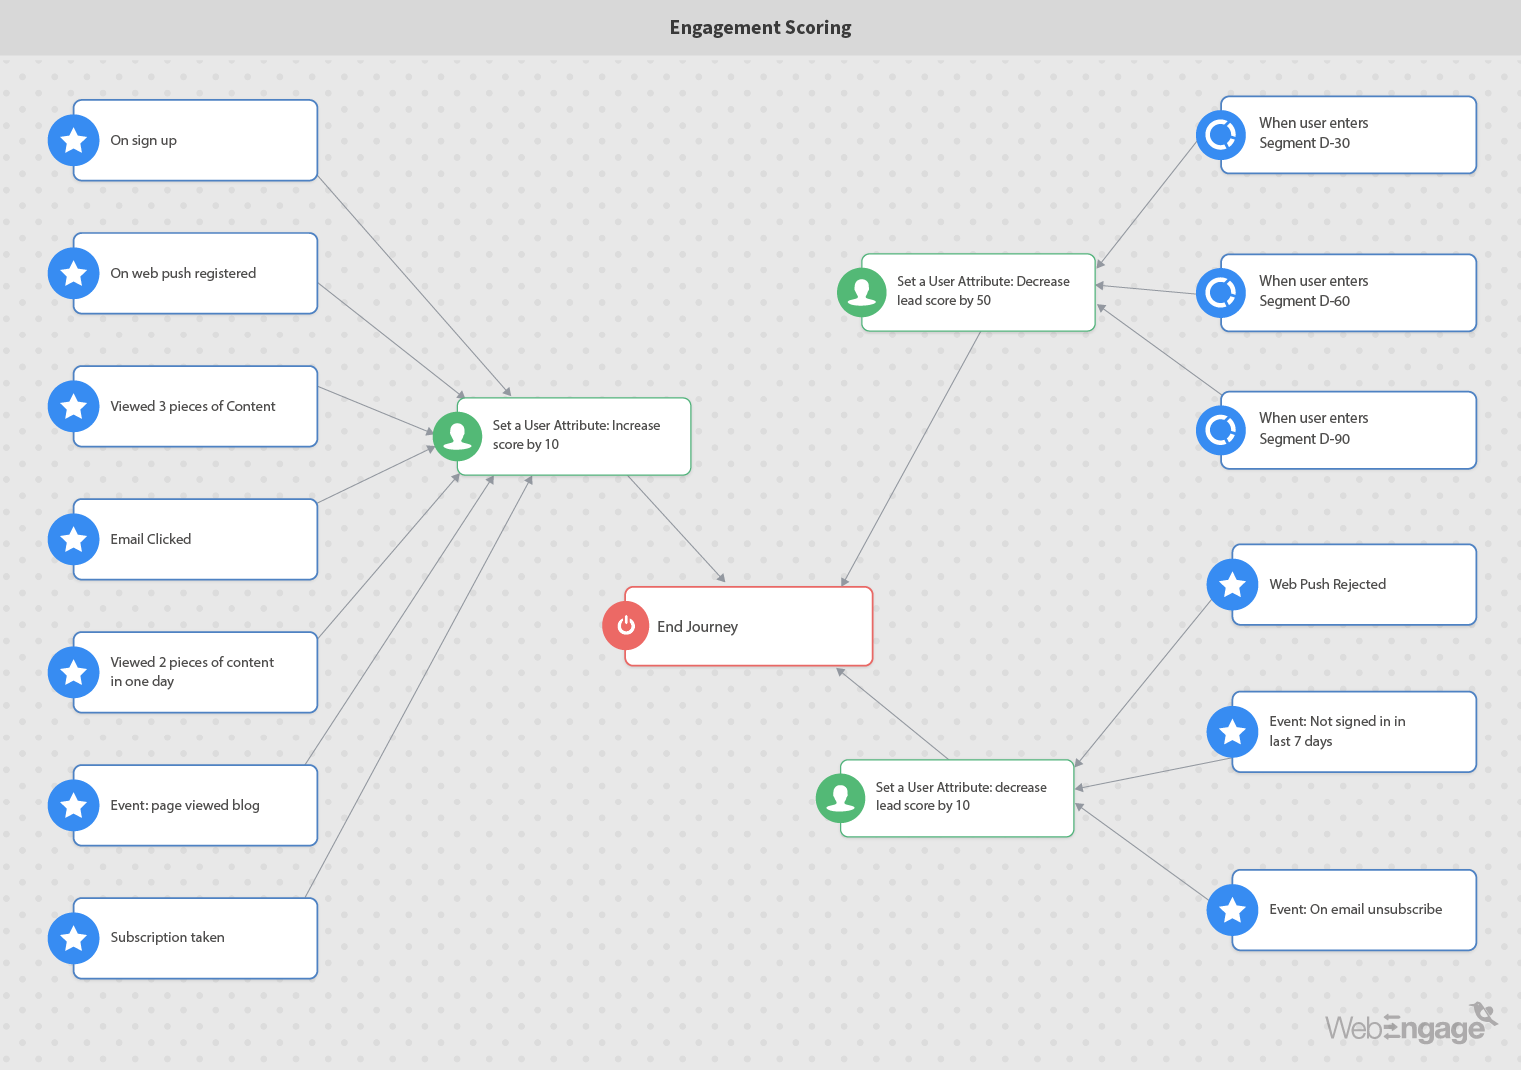 Marketing automation workflow for engagement scoring